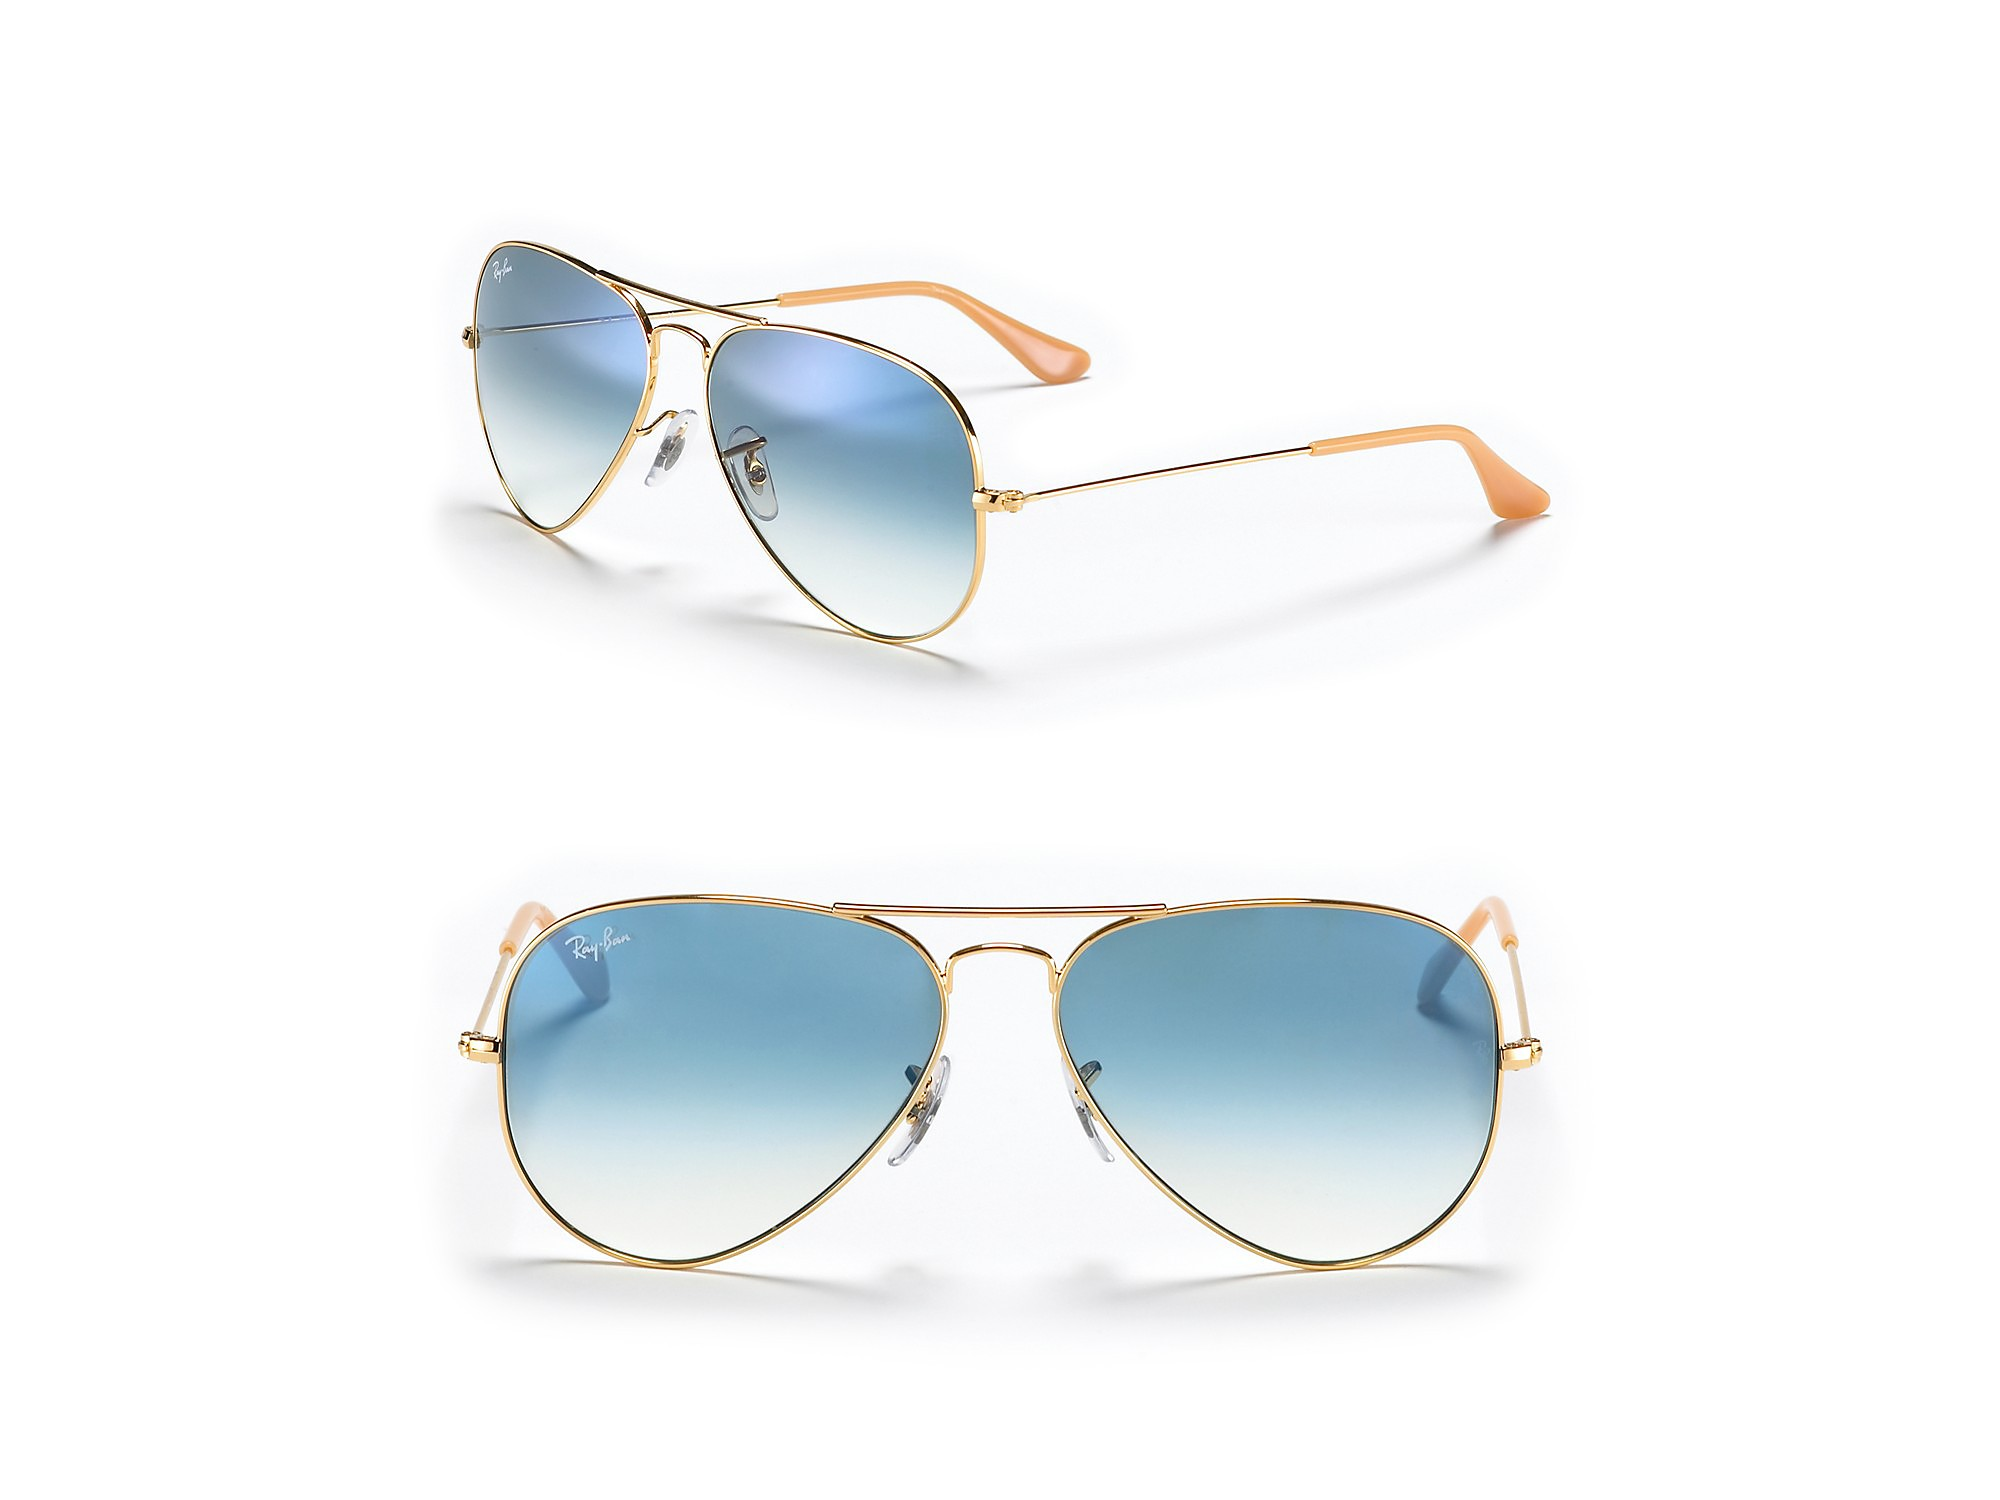 ray ban colored aviators  Ray-ban Classic Aviator Sunglasses in Blue for Men